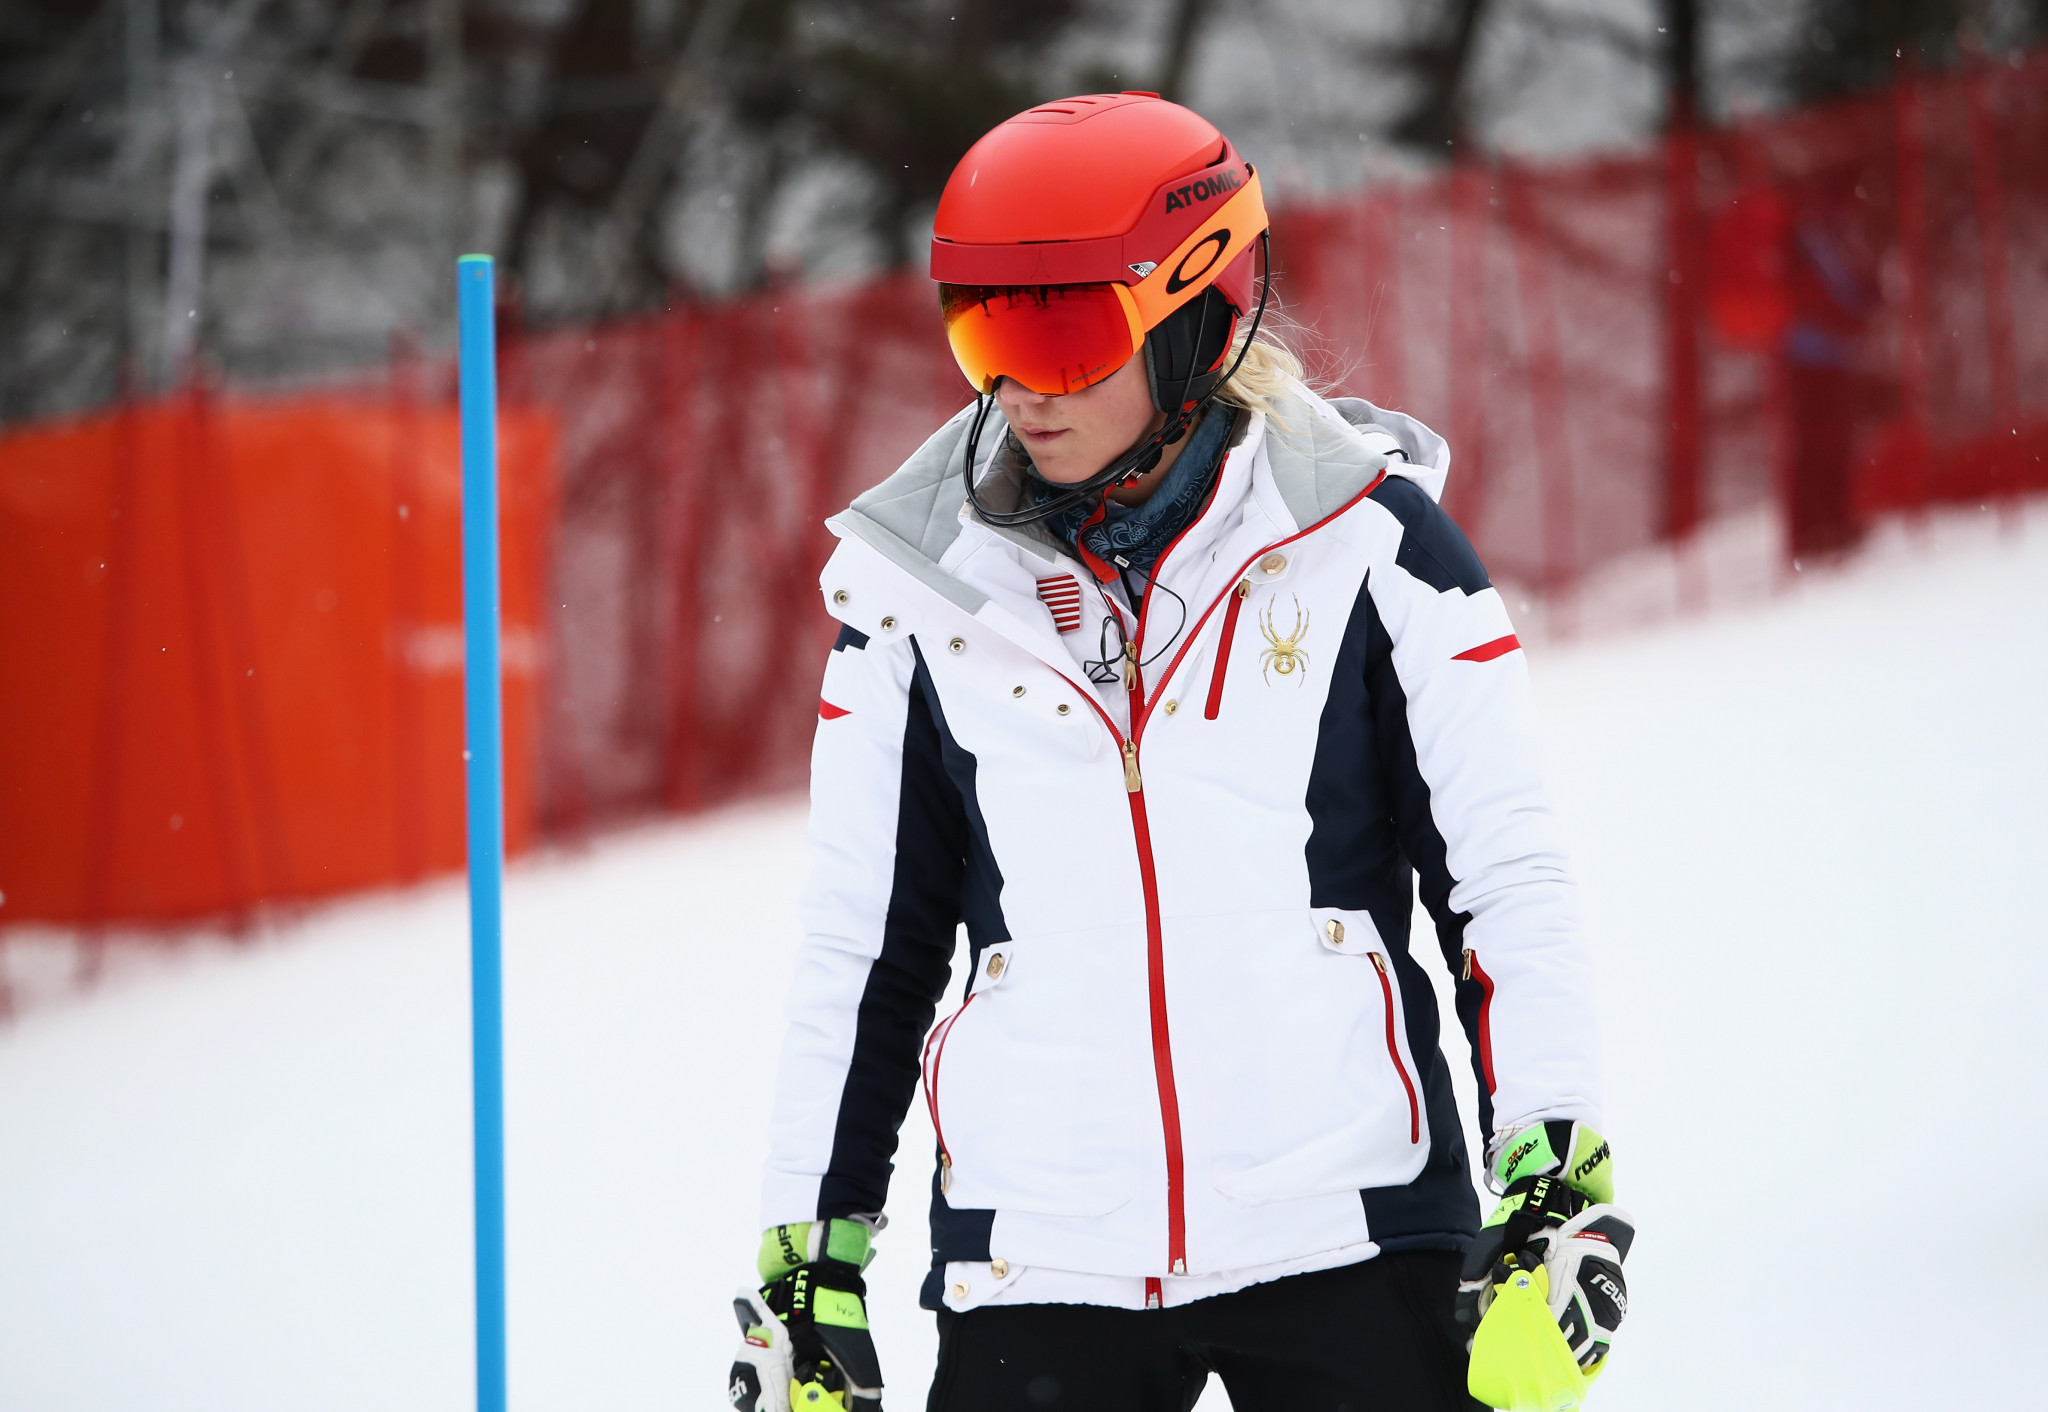 Shiffrin places fourth in slalom